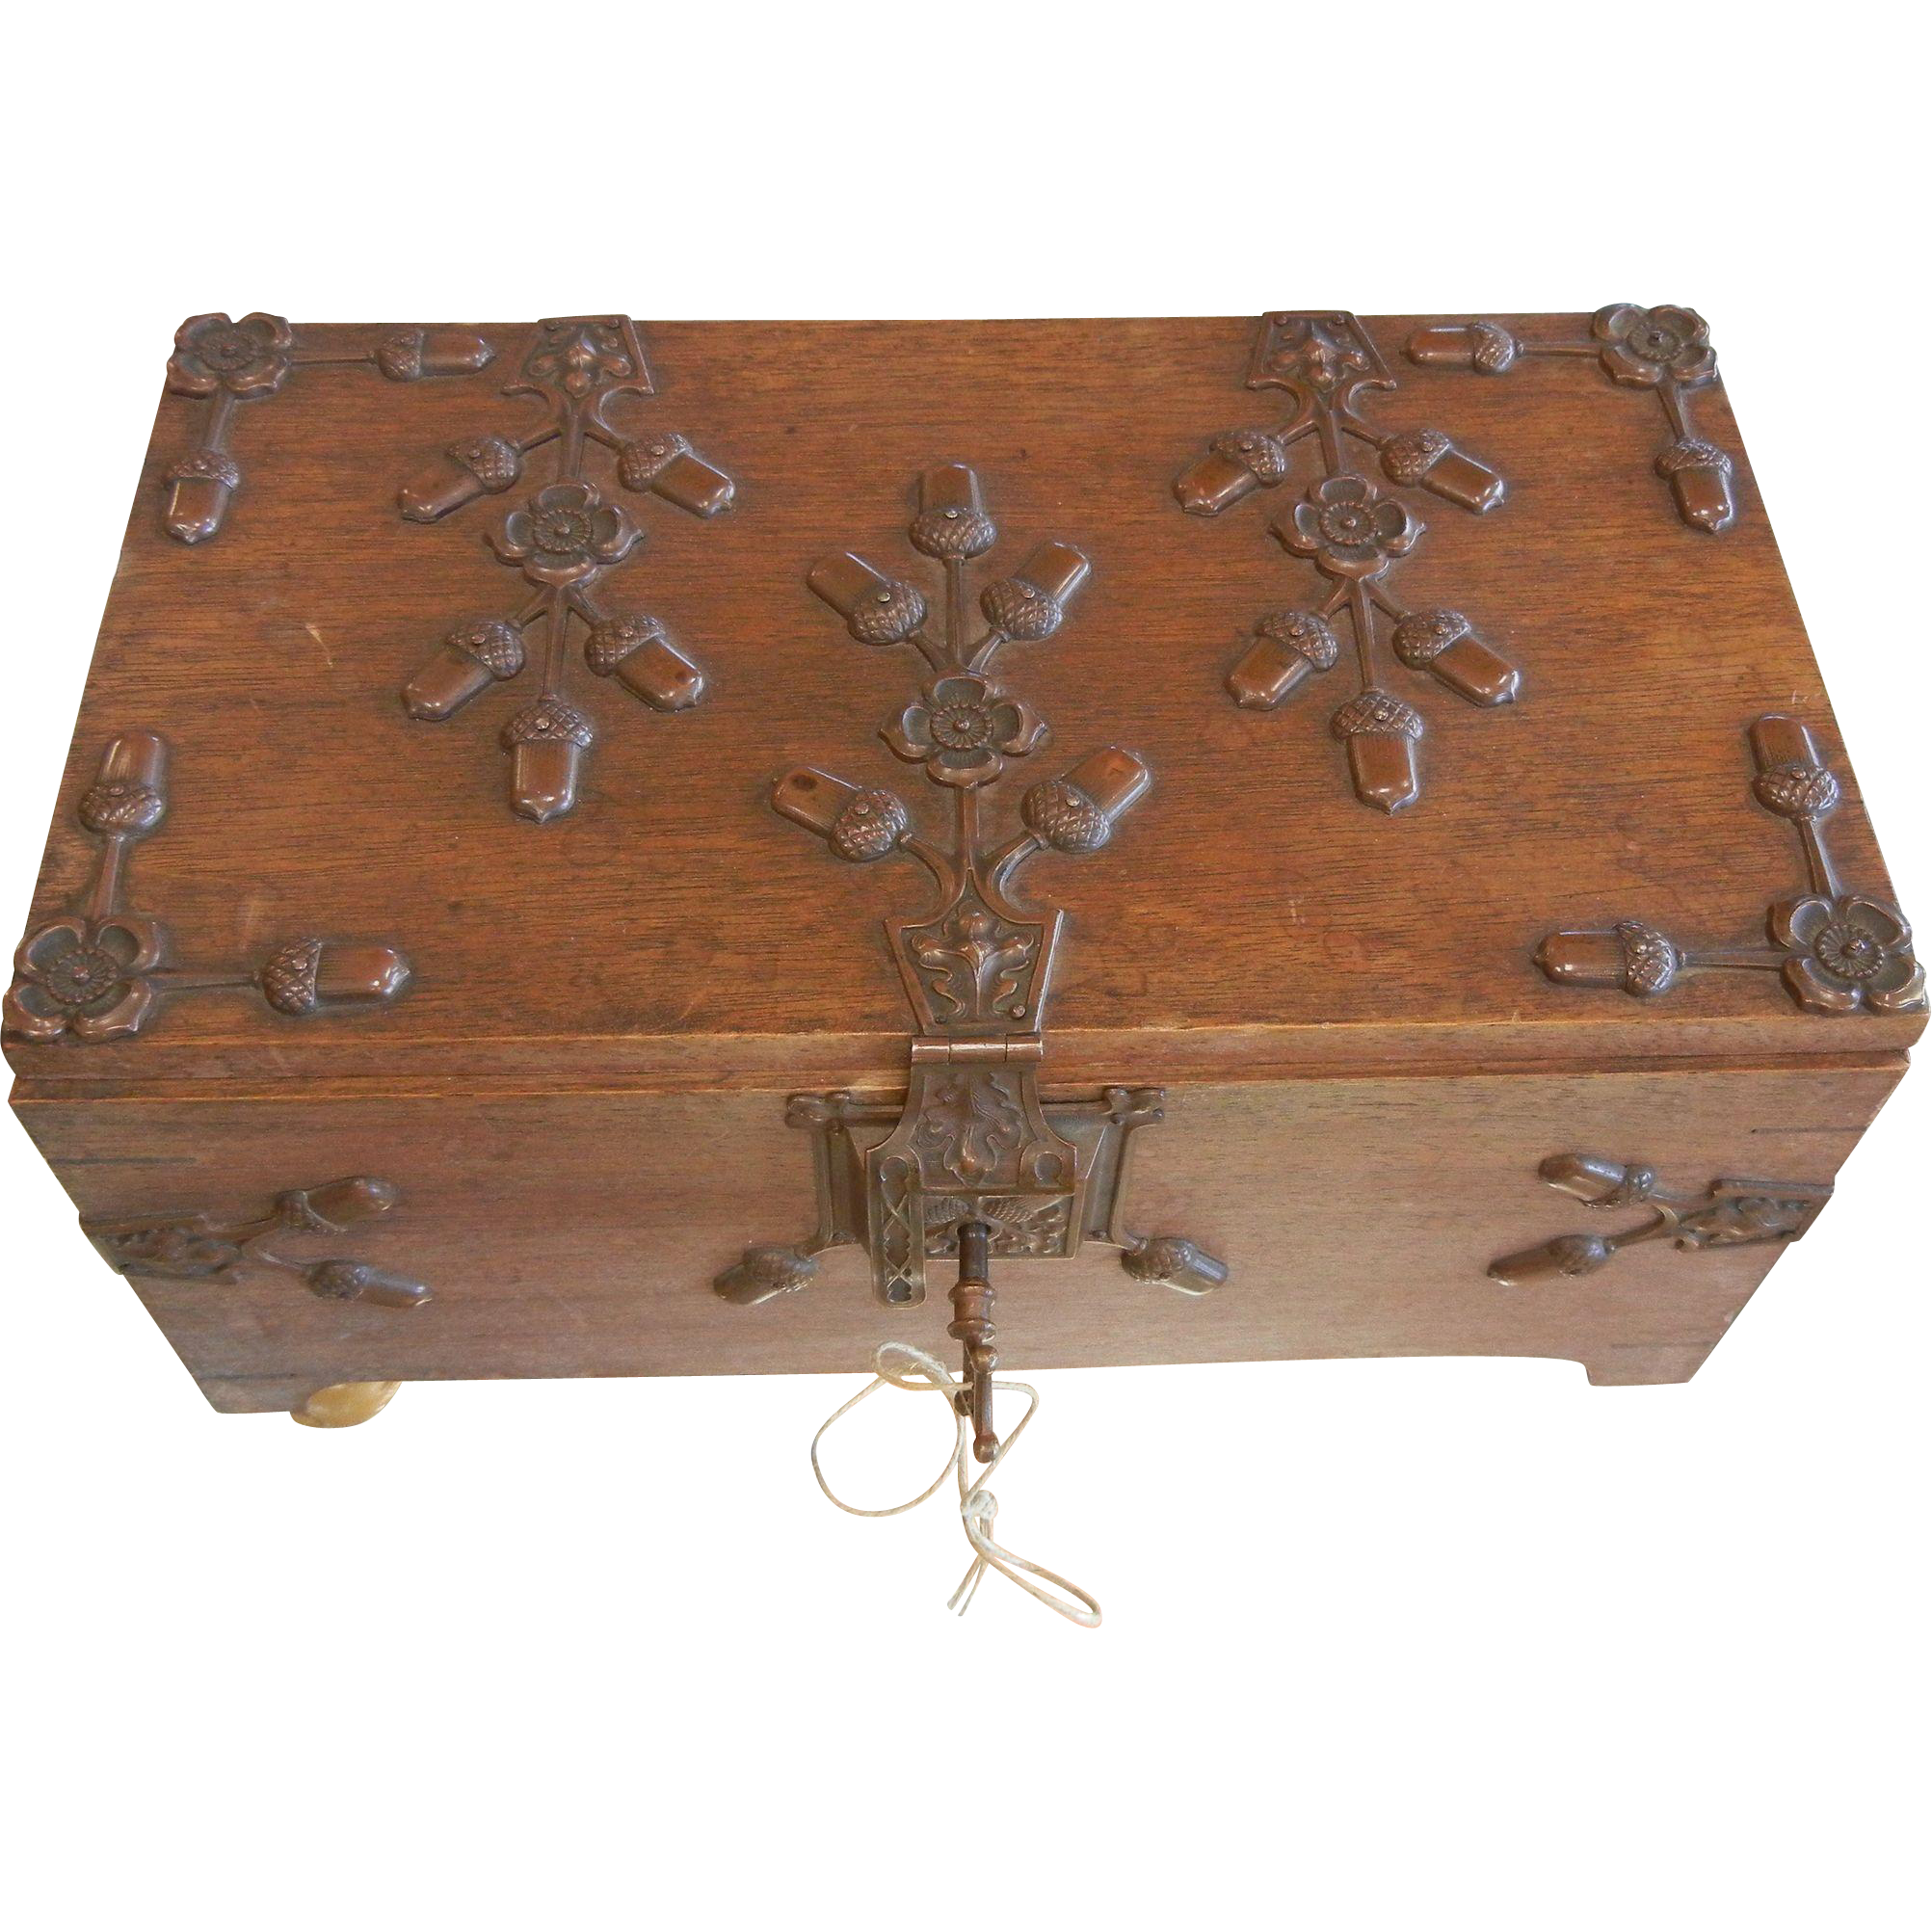 Fantastic Old German Locking Wooden Box With Key And Acorn Decor